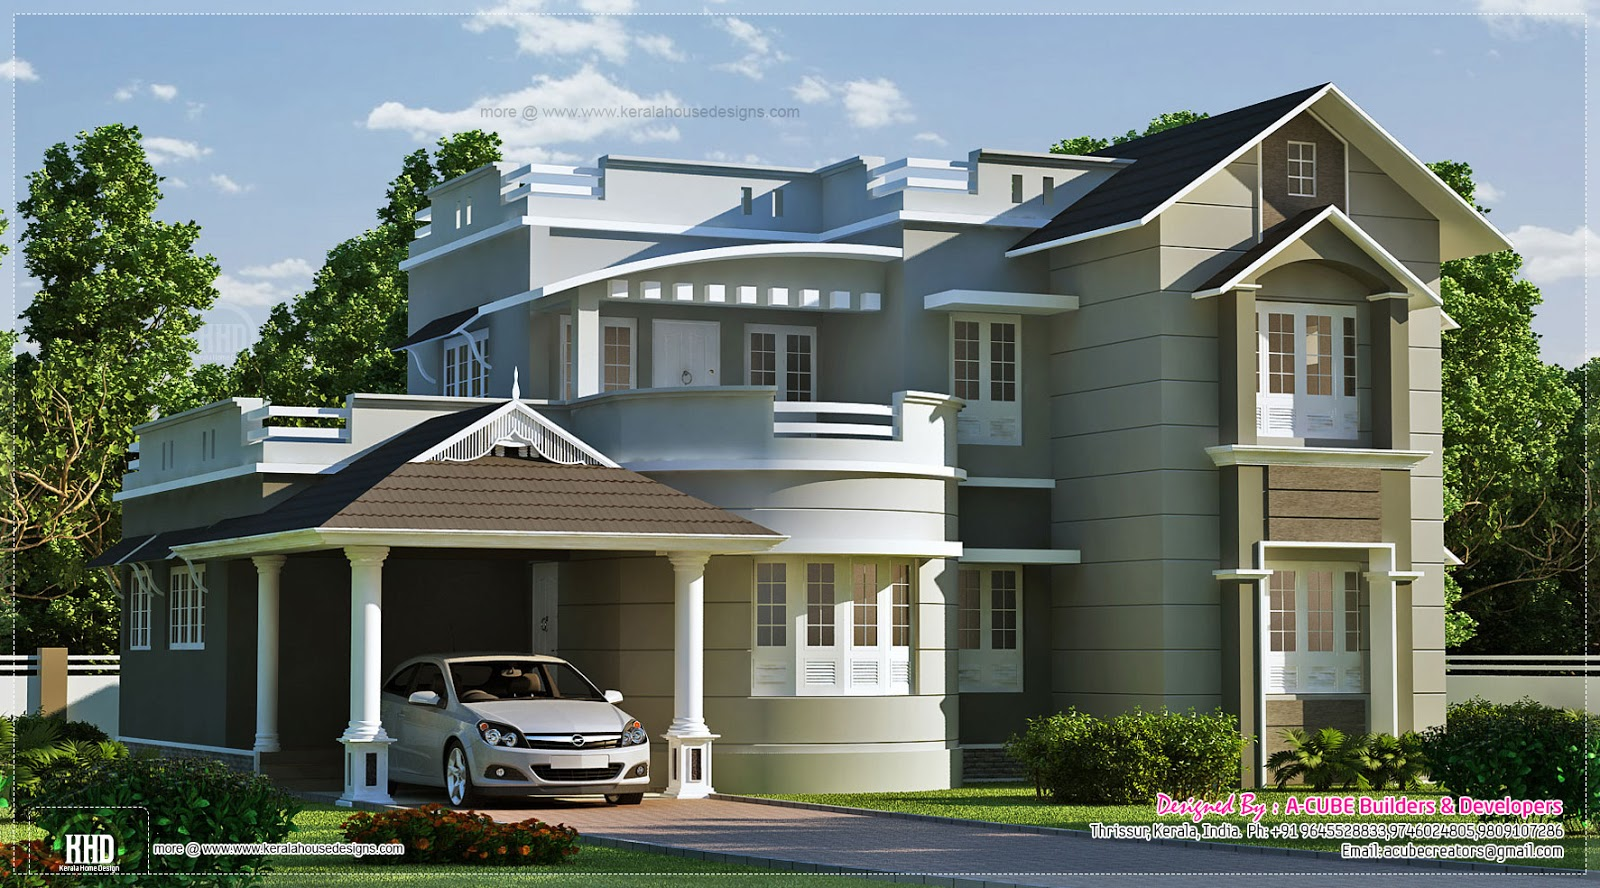 New style home exterior in 1800 kerala home for House architecture styles in india